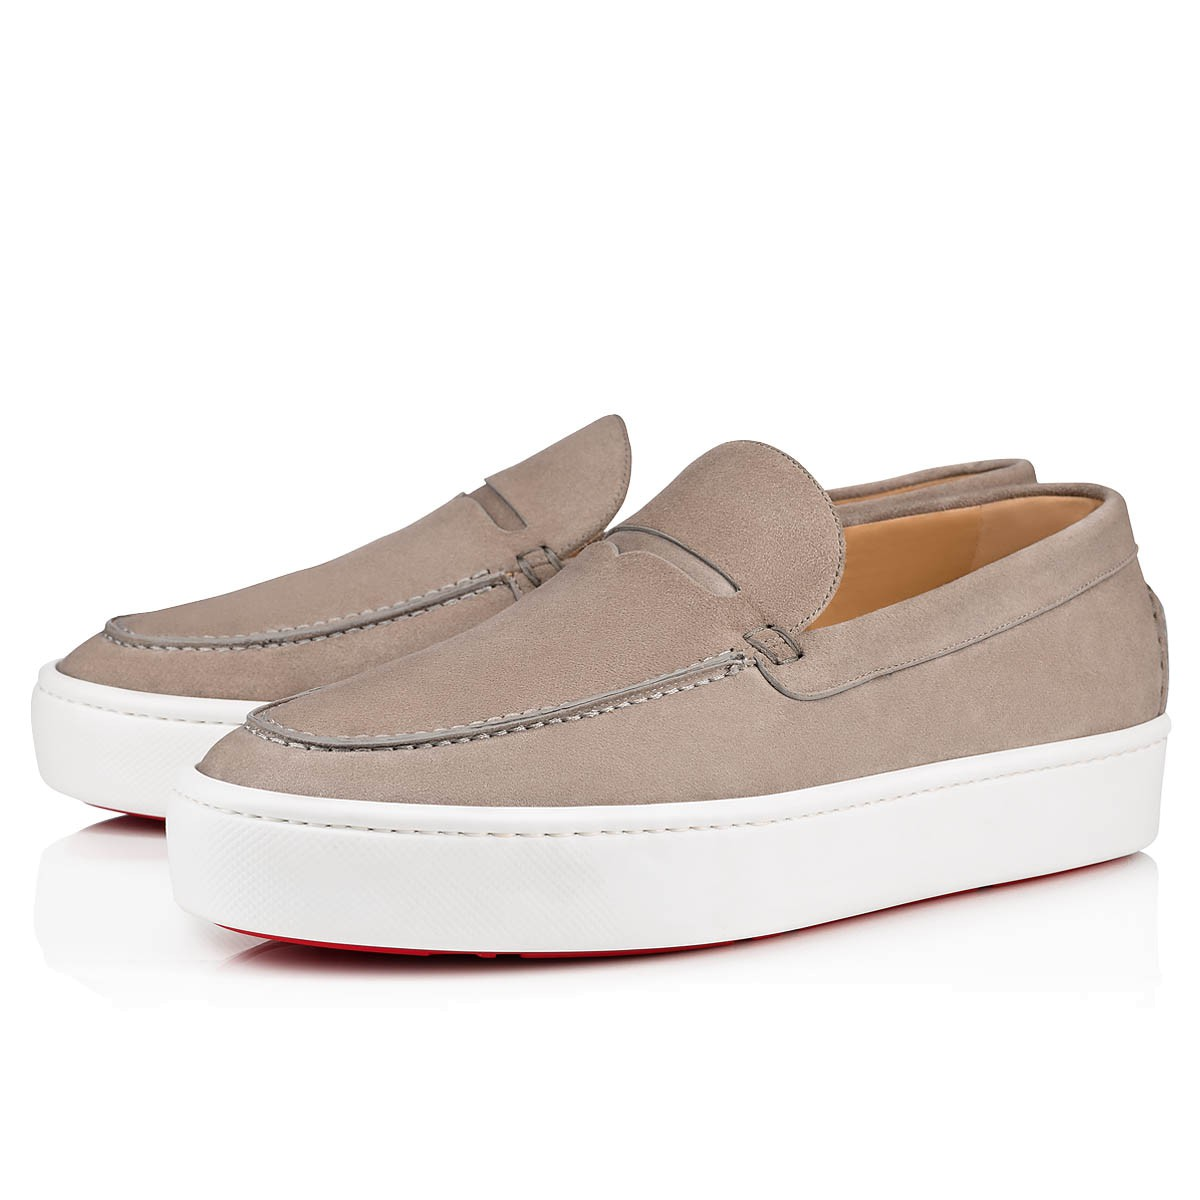 Souliers - Paqueboat - Christian Louboutin